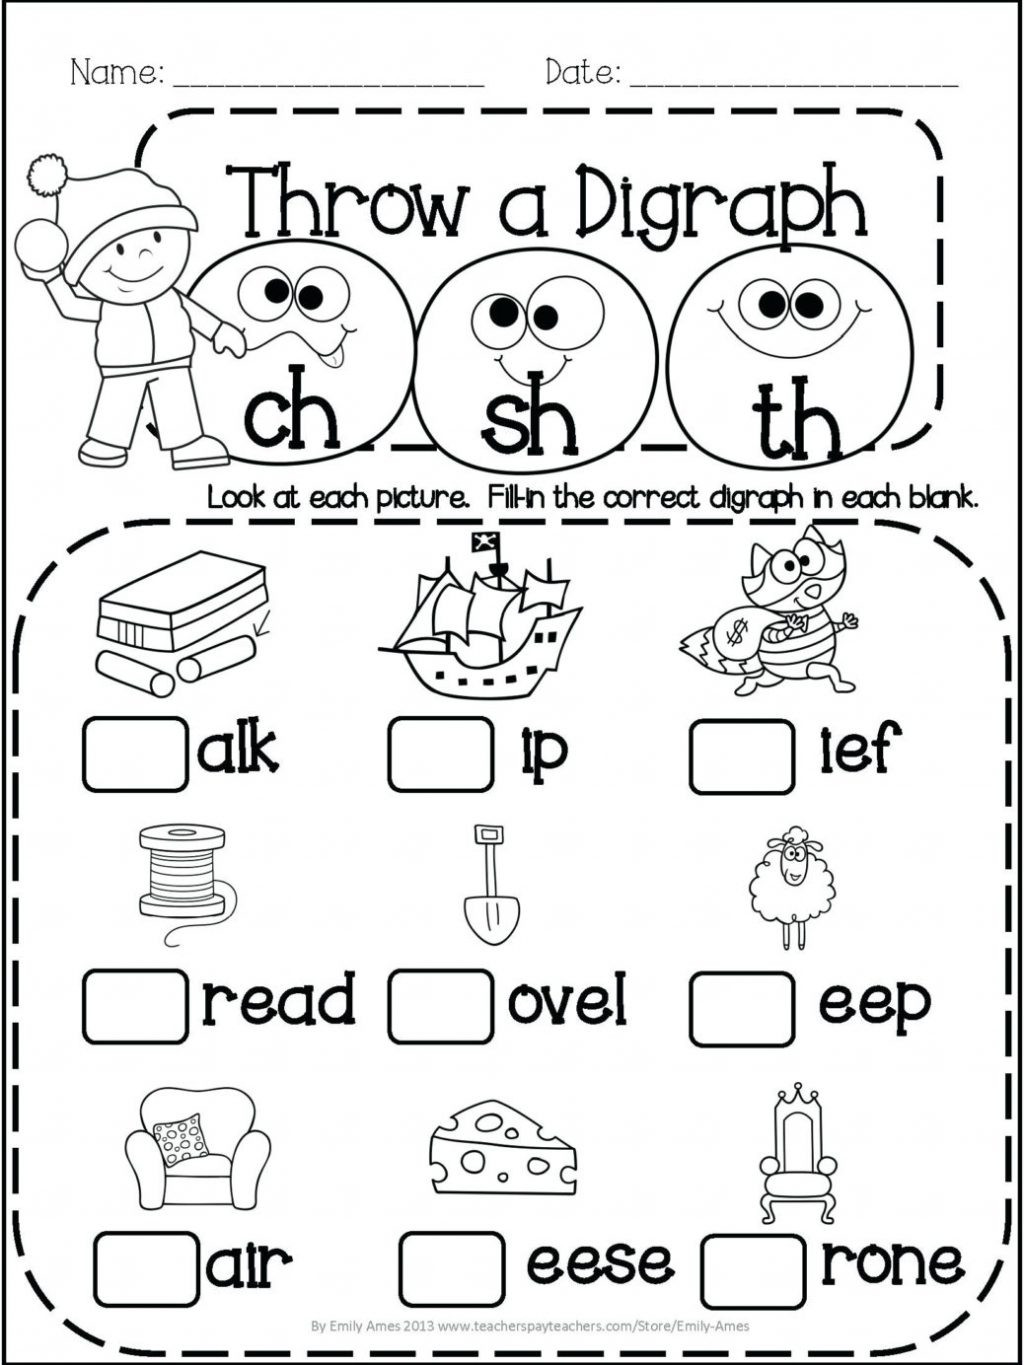 Blending Worksheets 1st Grade Worksheet Awesome 1st Grade Phonicsksheets Image Ideas